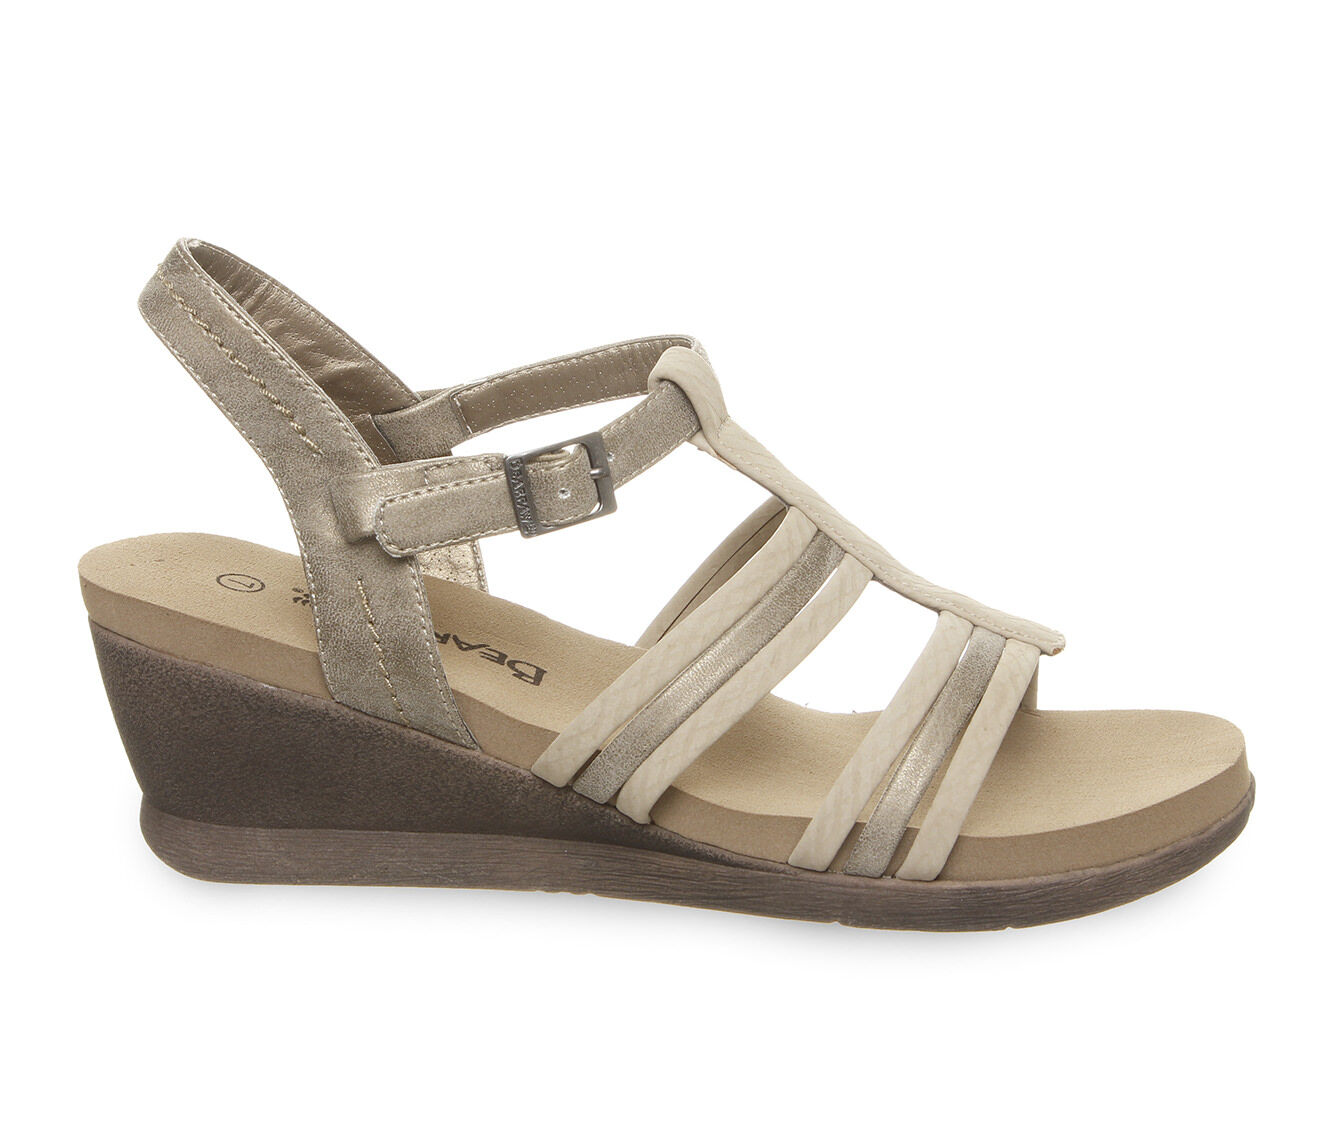 Crazy Price Women's Bearpaw Viola Strappy Wedge Sandals Pewter